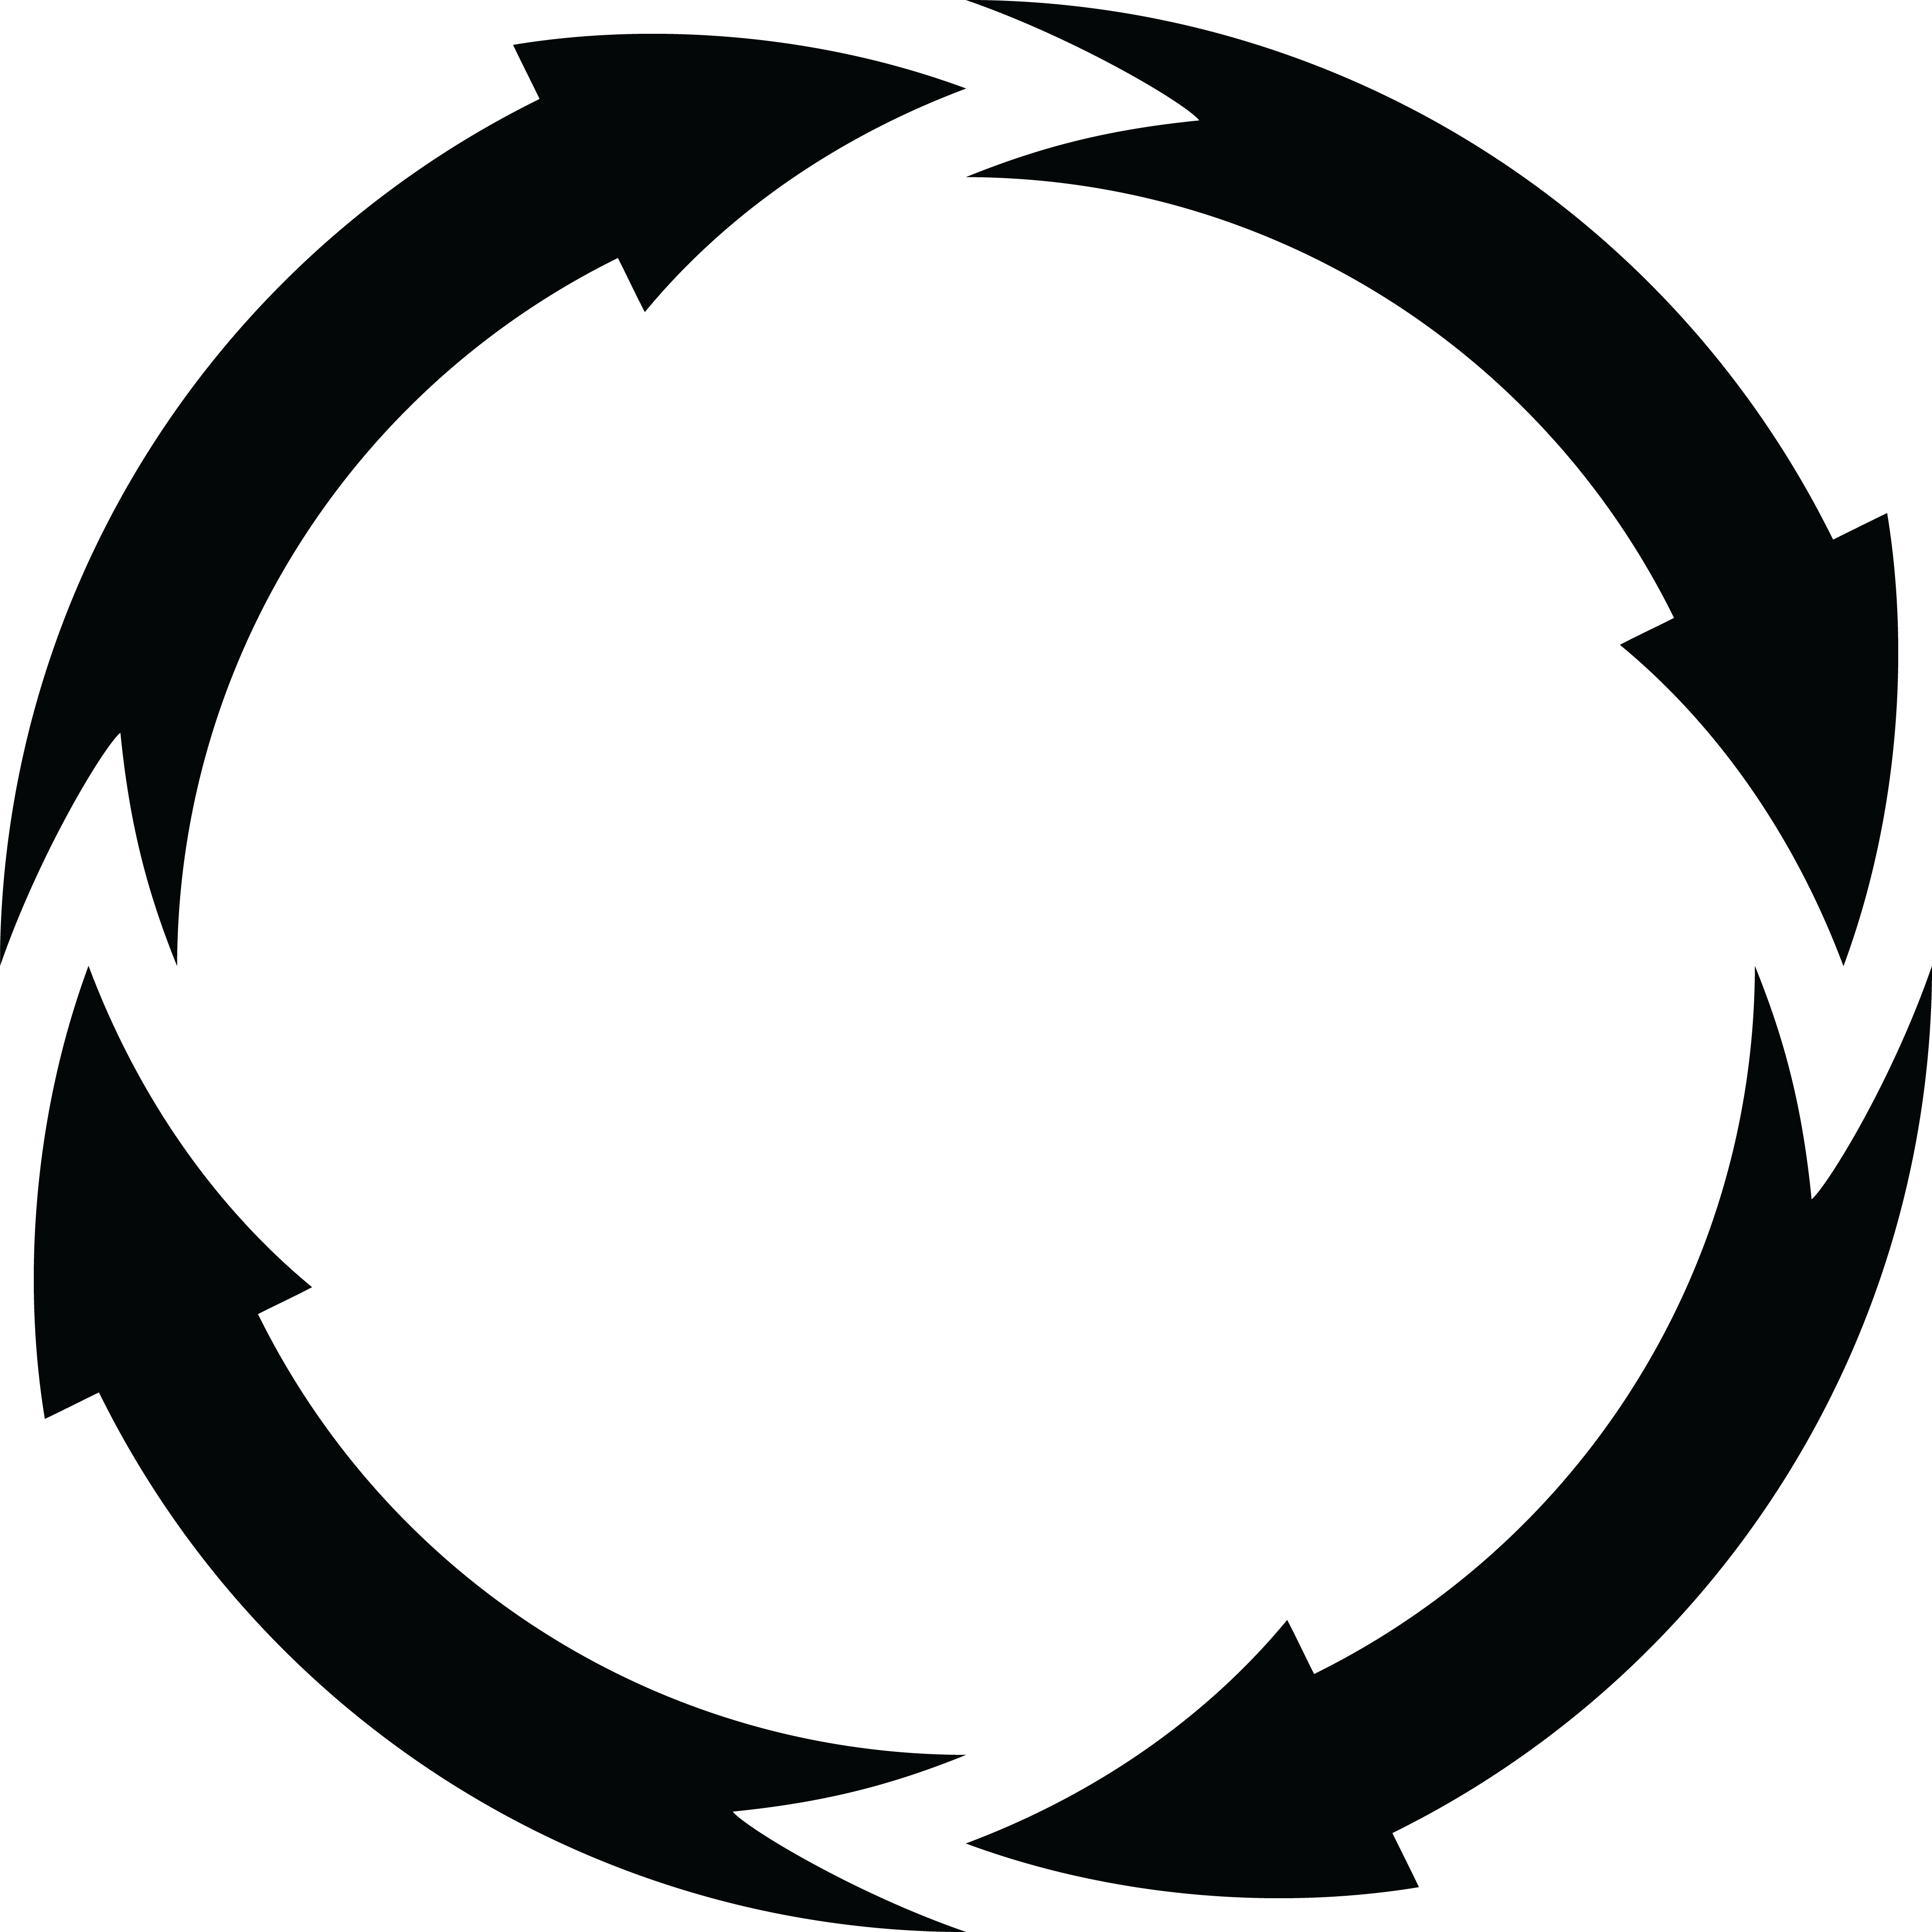 Circle clipart arrow. In a image